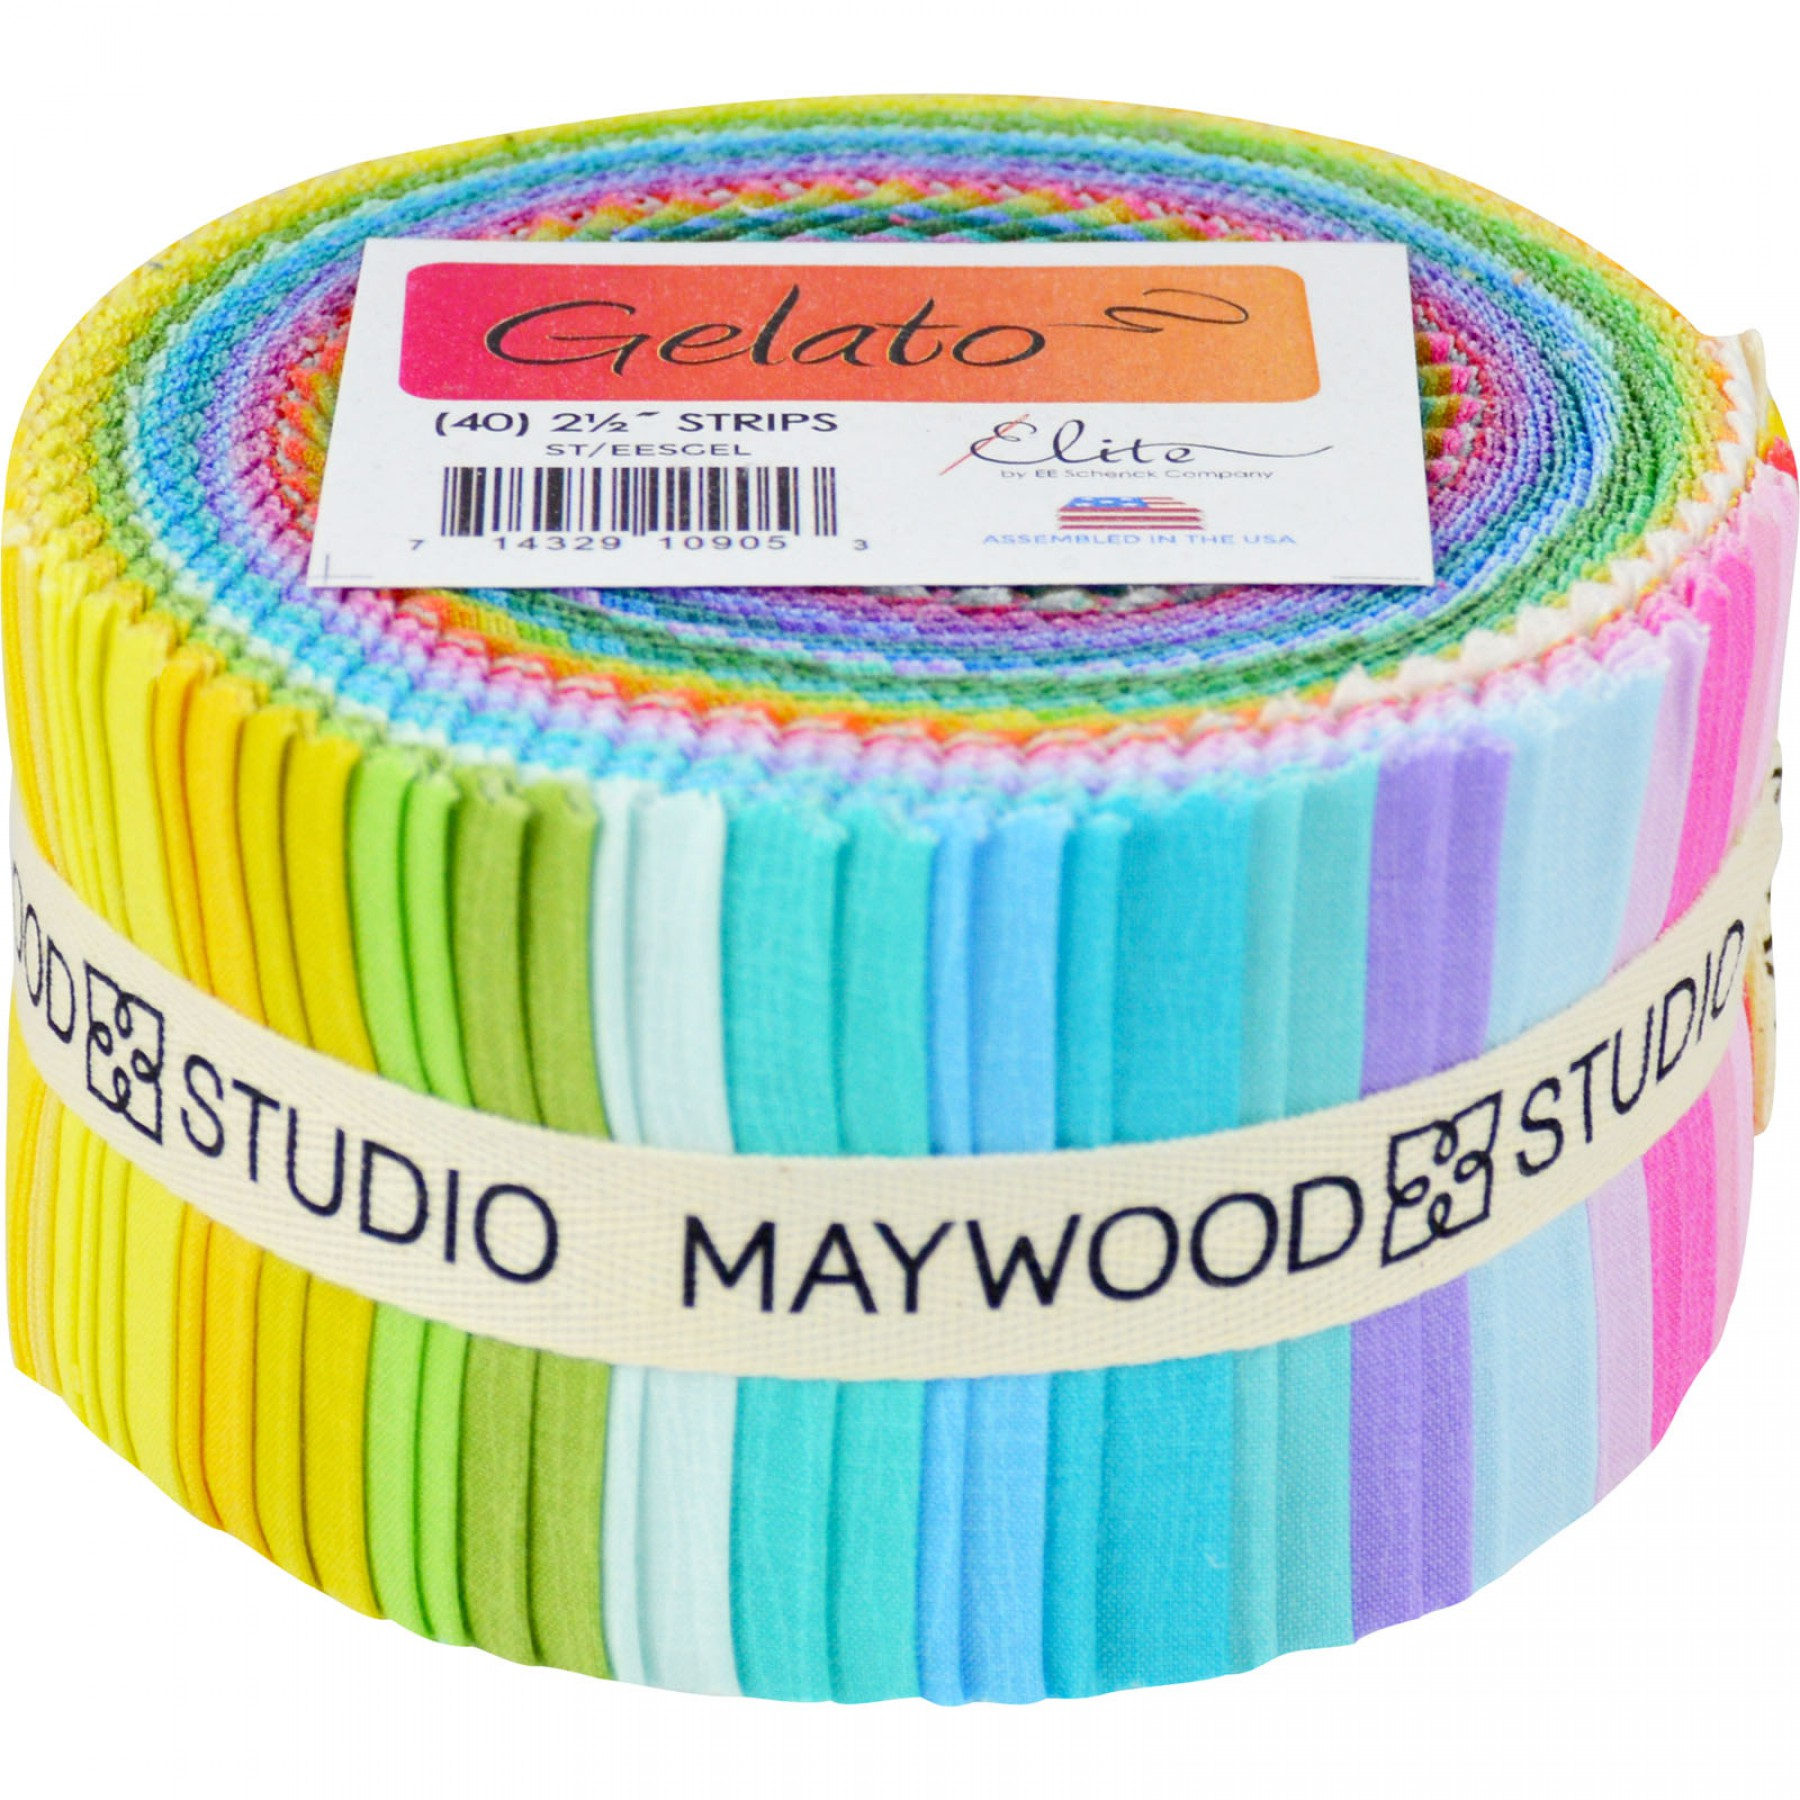 Maywood Studios - Jelly Roll - Gelato